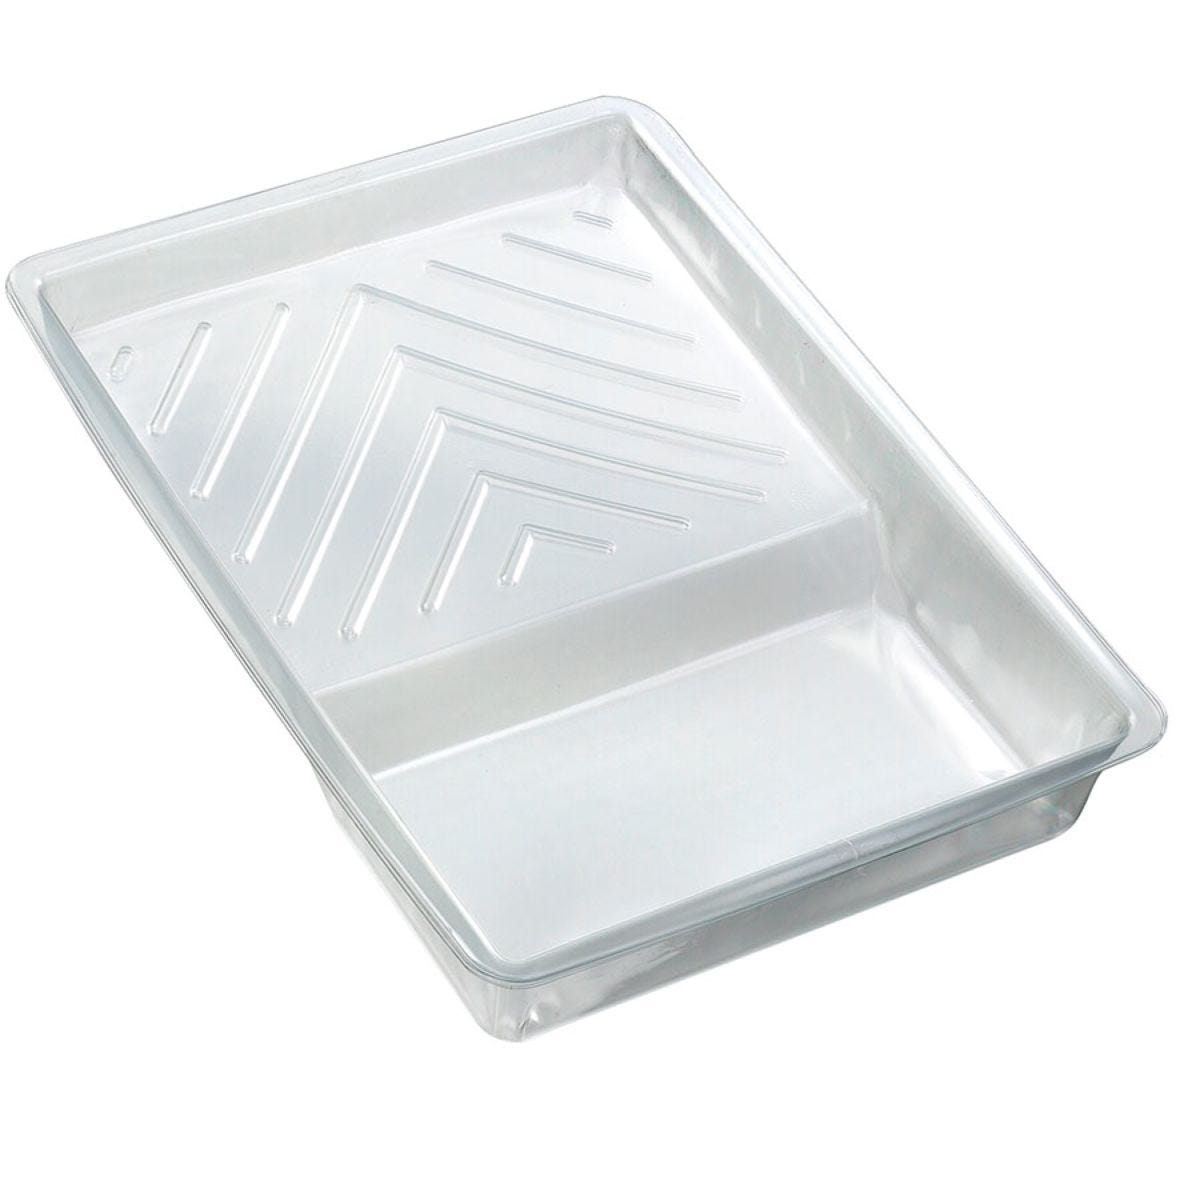 Harris Taskmasters 9-Inch Disposable Tray Inserts